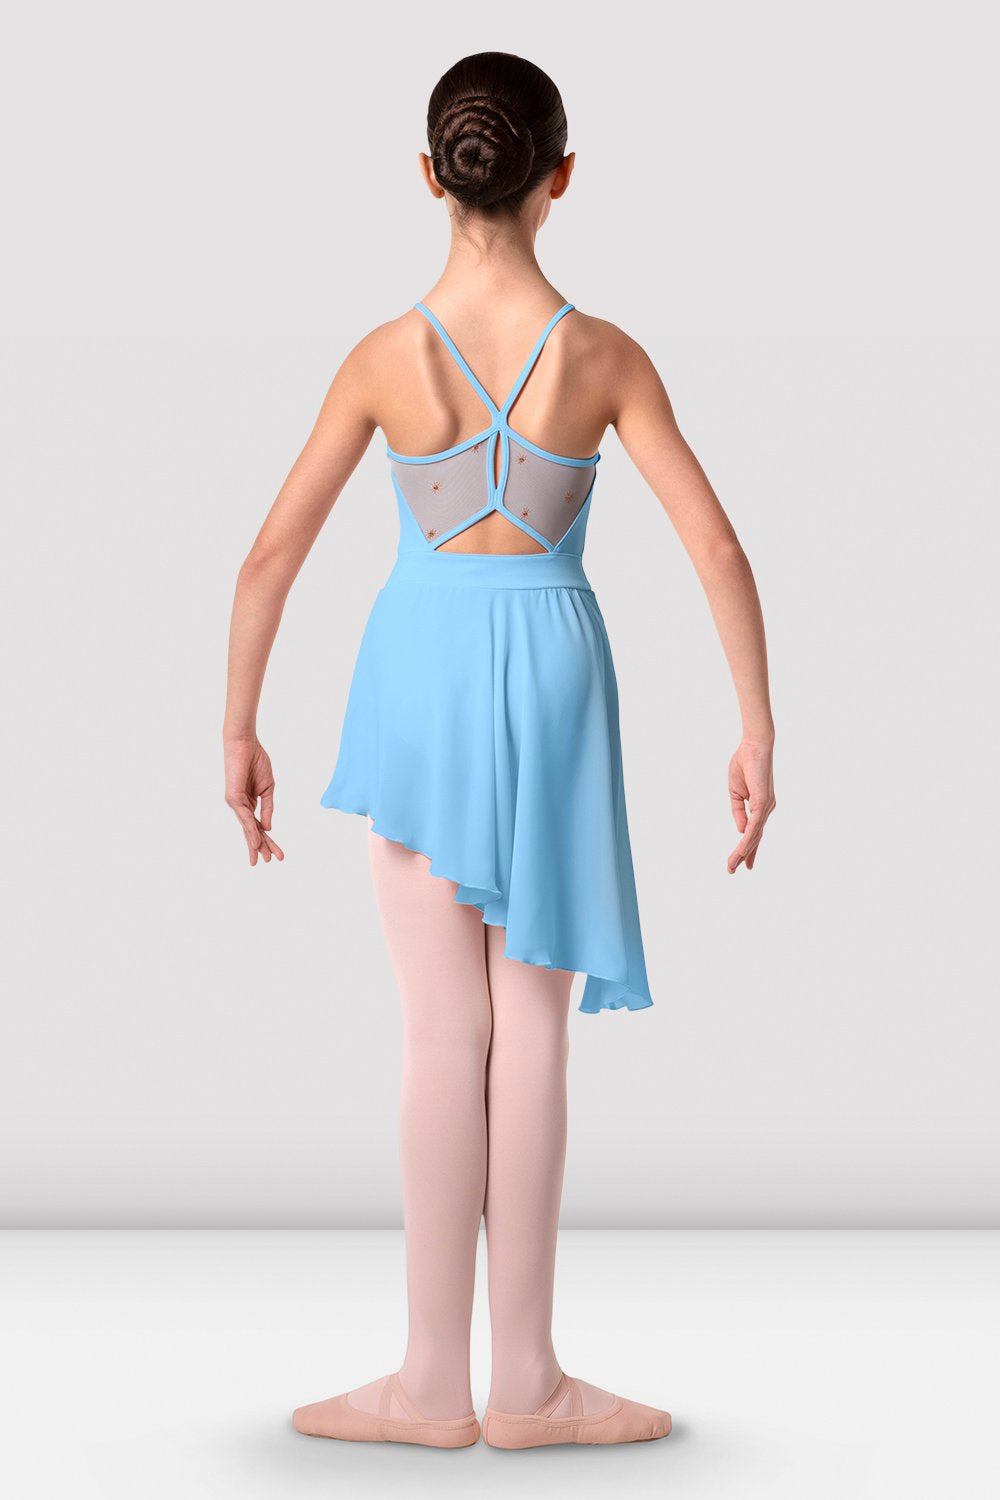 Girls Eurika Camisole Skirted Leotard - BLOCH US